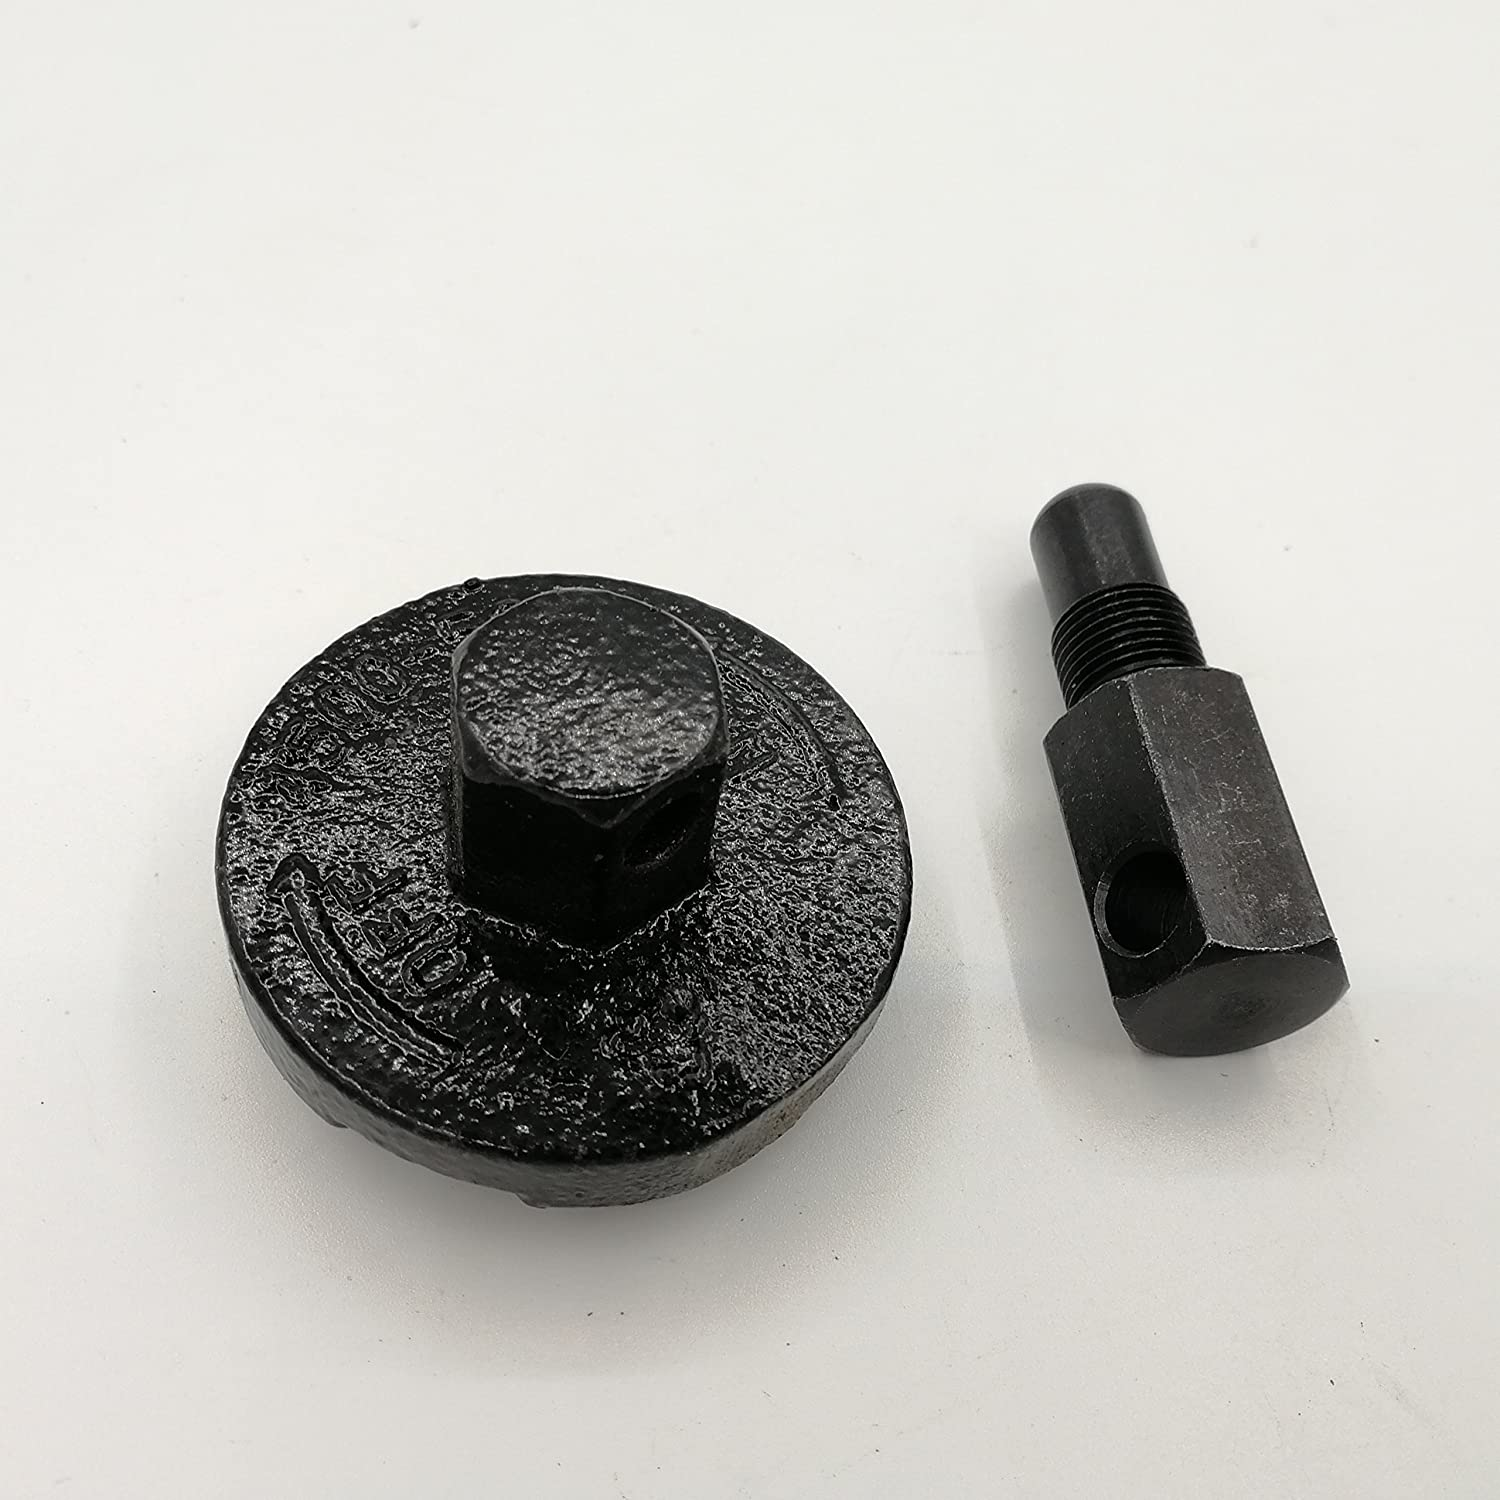 14mm PISTON STOP FOR CLUTCH SPROCKET REMOVAL REPAIR SHOP EQUIPMENT TOOL